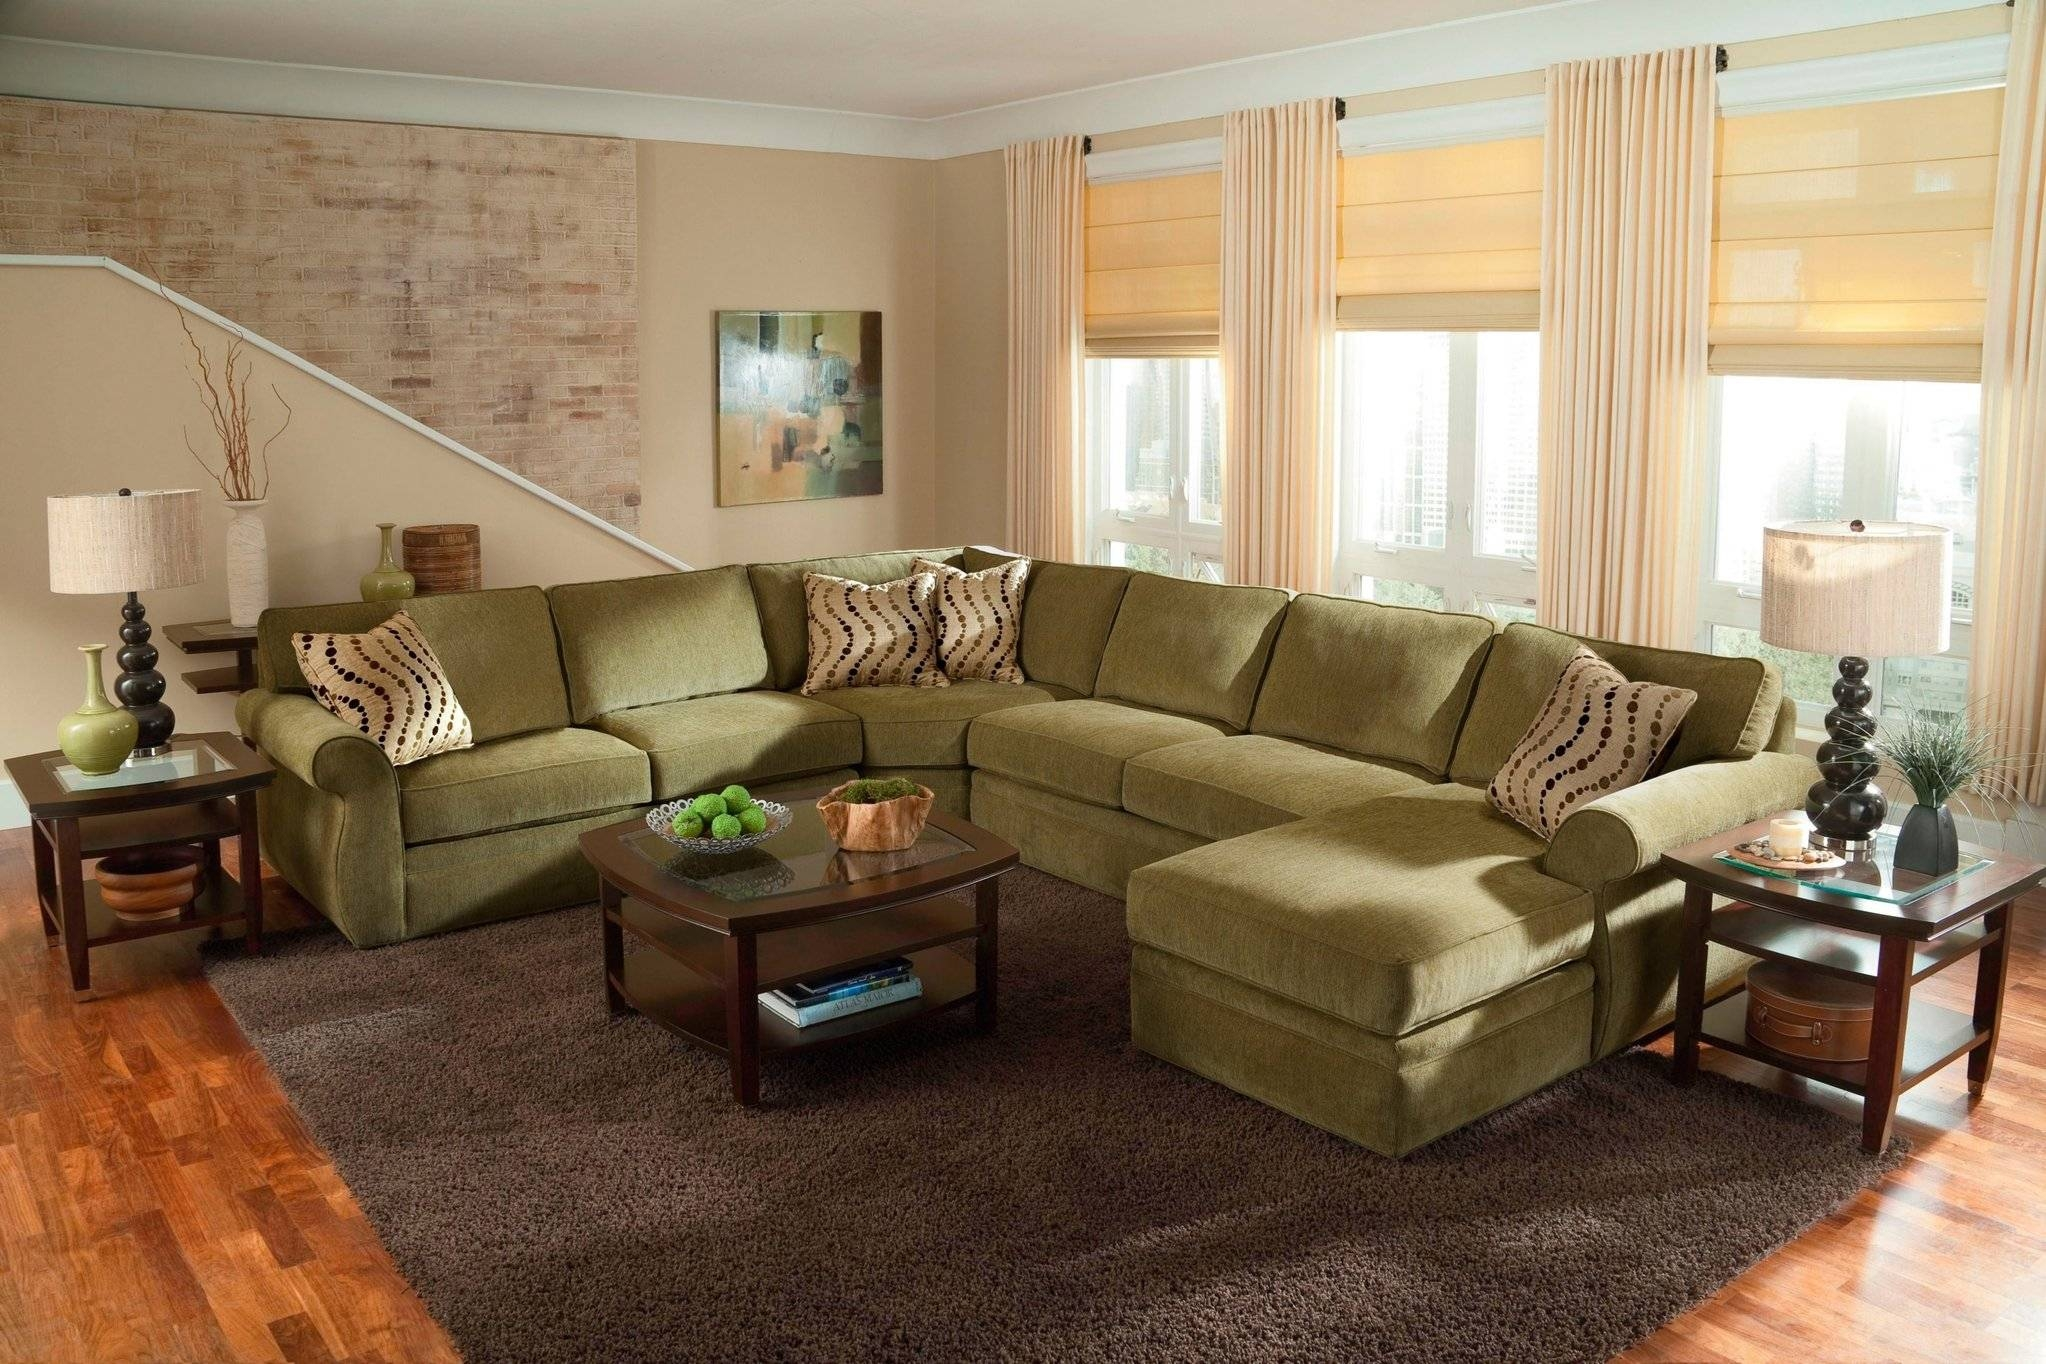 Furniture: Comfortable Oversized Sectional Sofas For Your Living in Giant Sofas (Image 3 of 15)